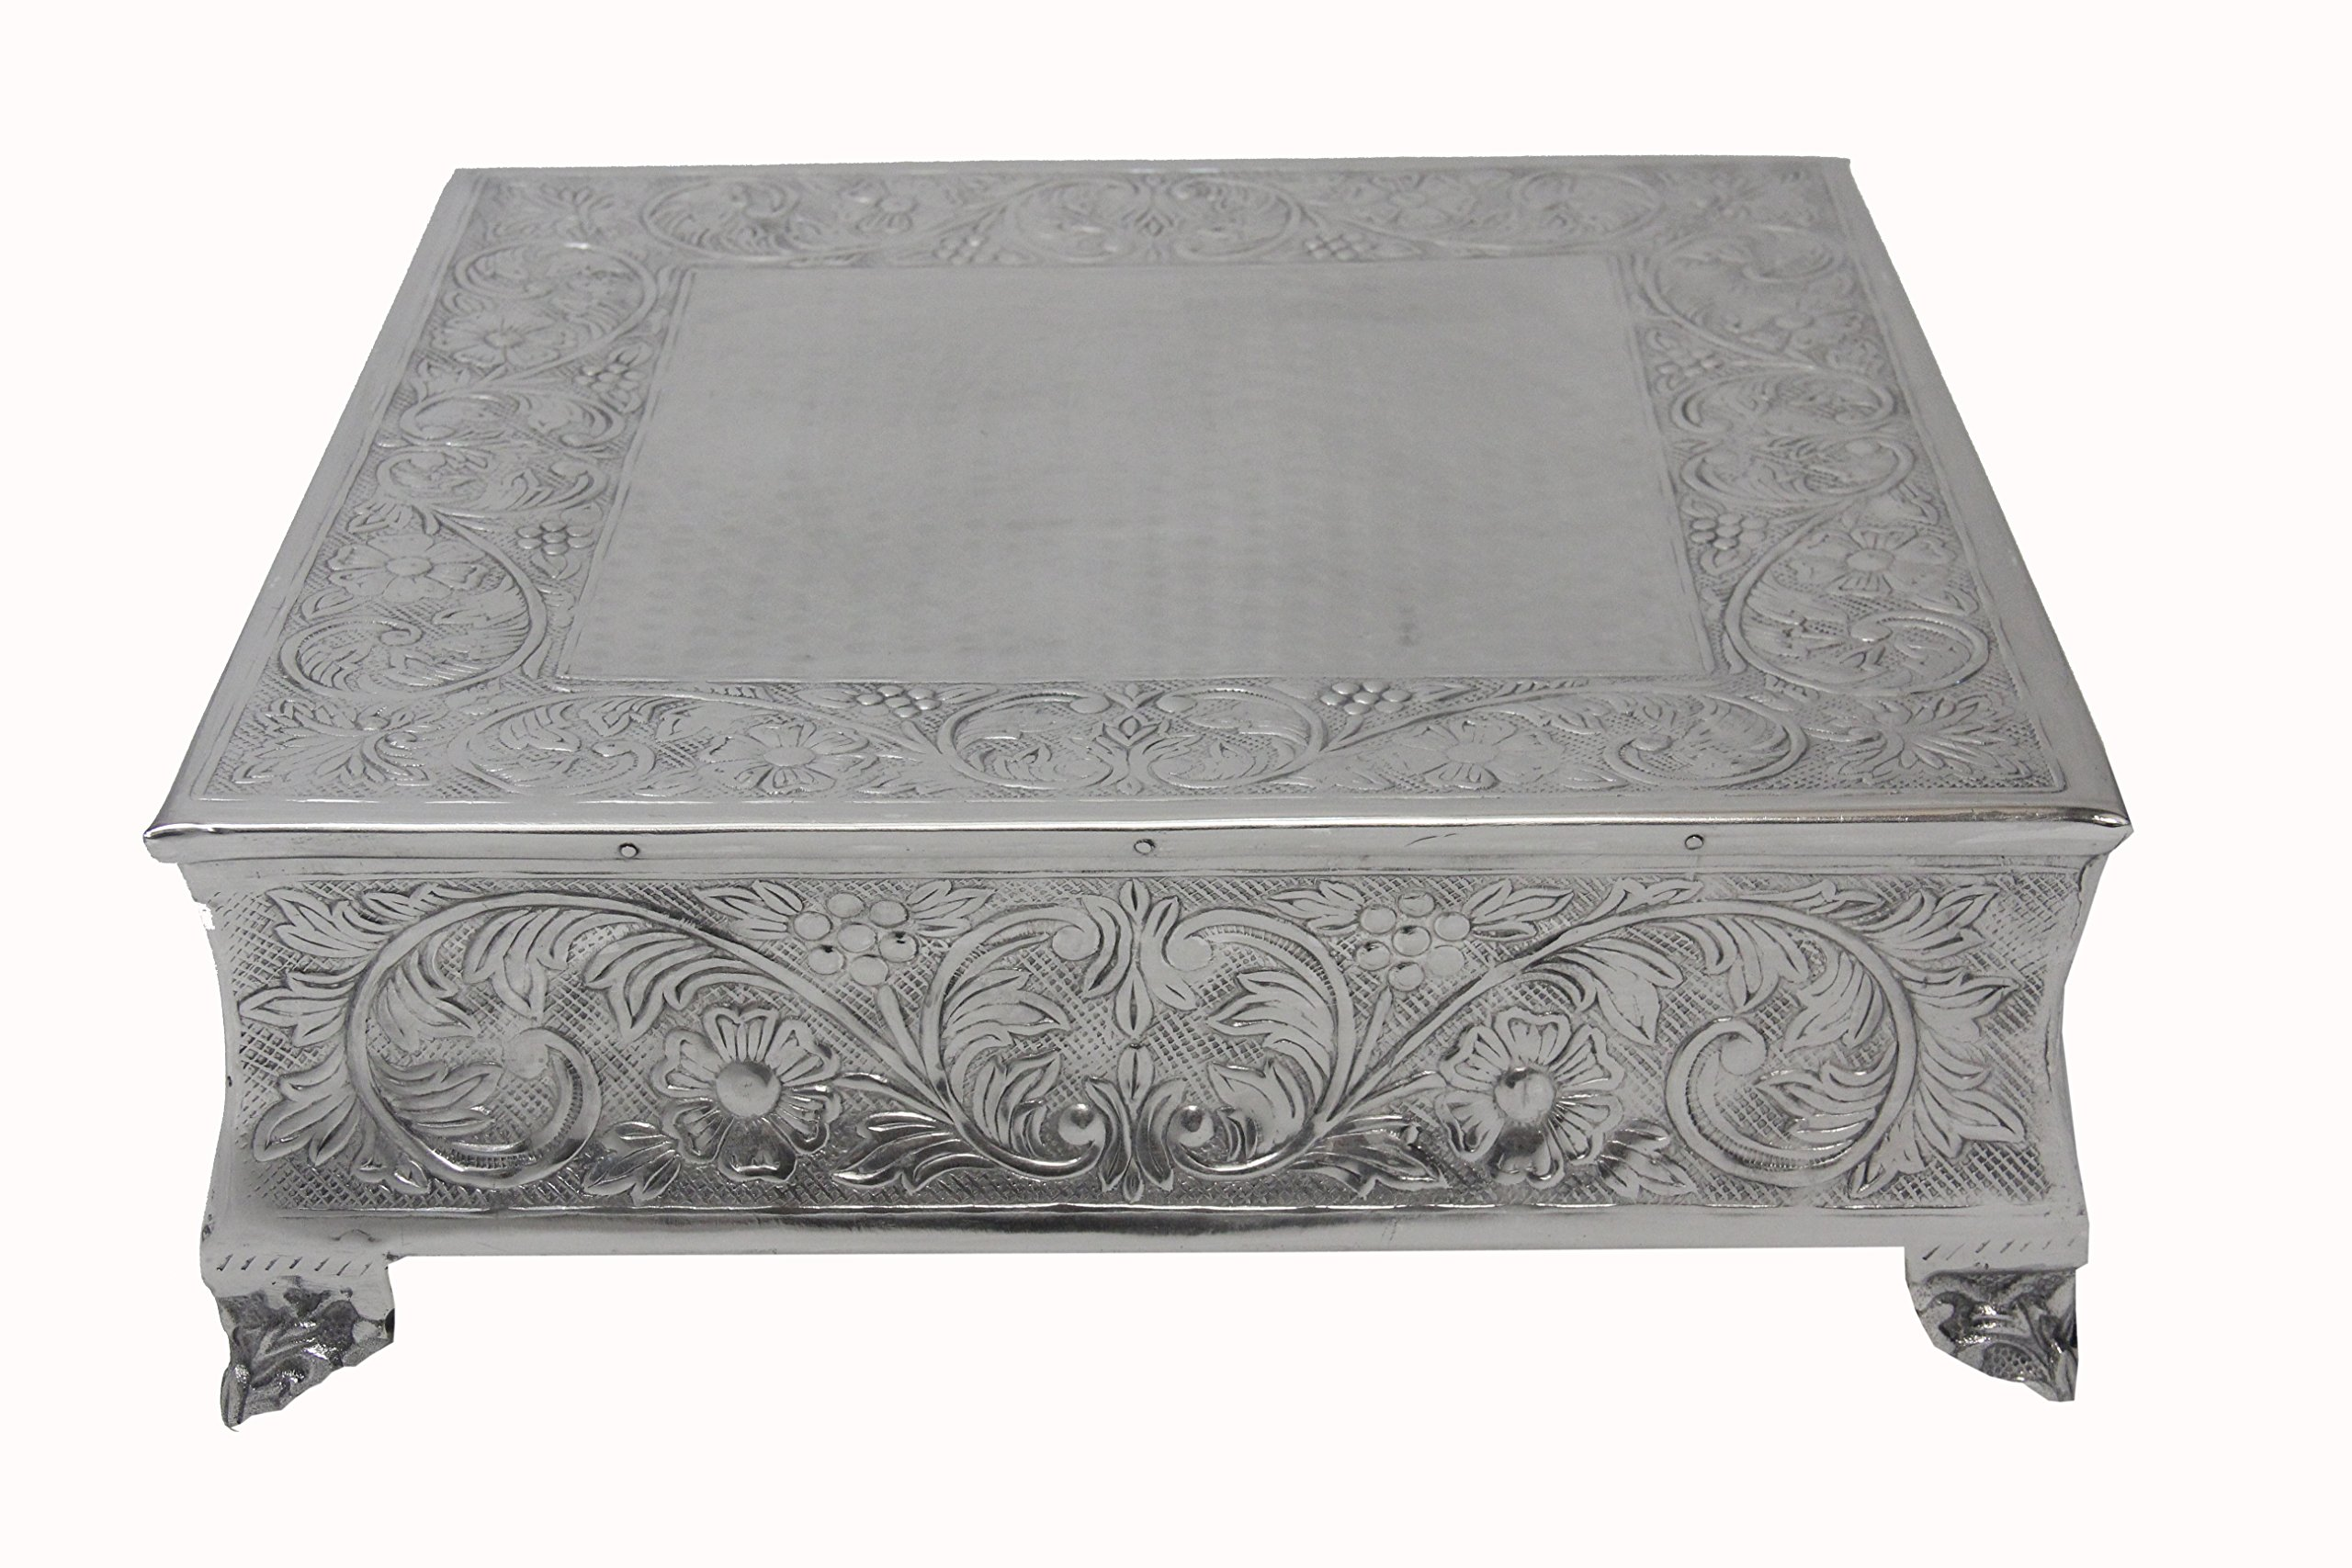 GiftBay Creations 751-22S Wedding Square Cake Stand, 22-Inch, Silver by GiftBay Creations (Image #1)